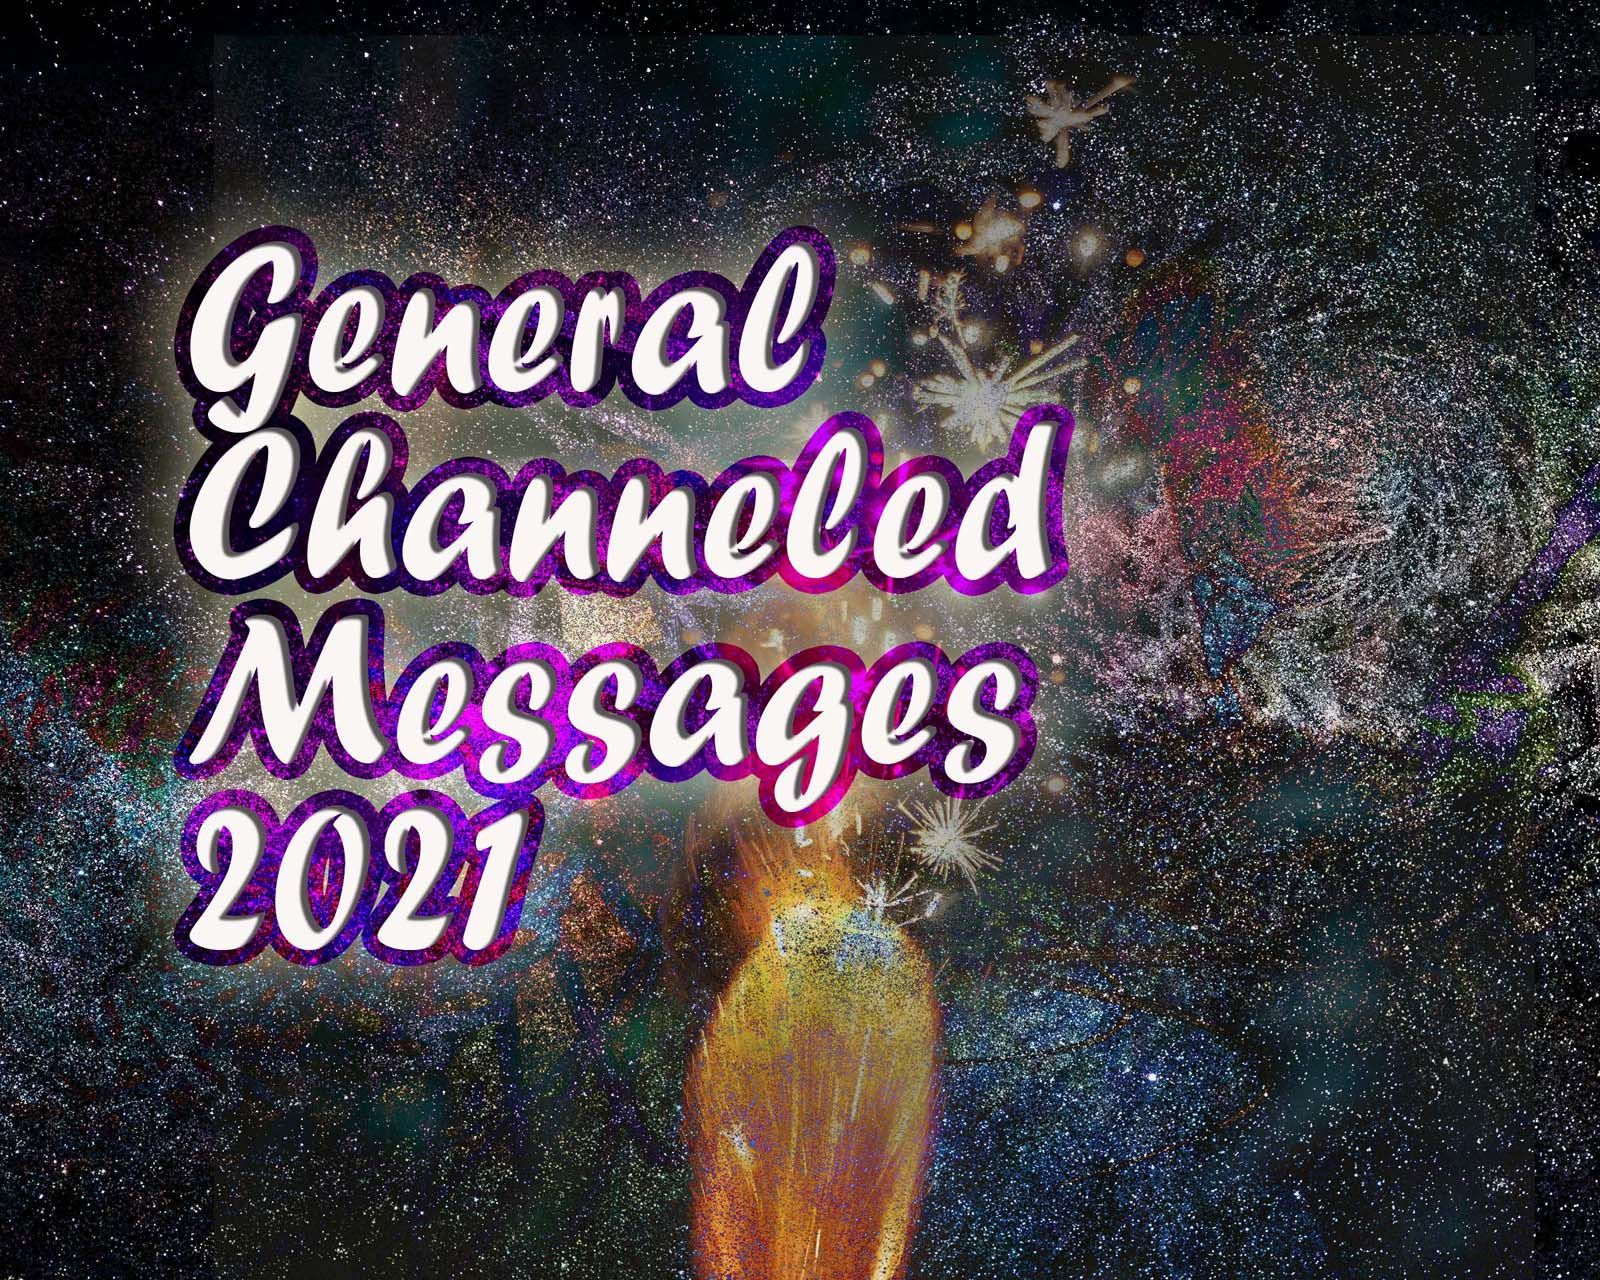 General Channeled Messages For Blog Readers